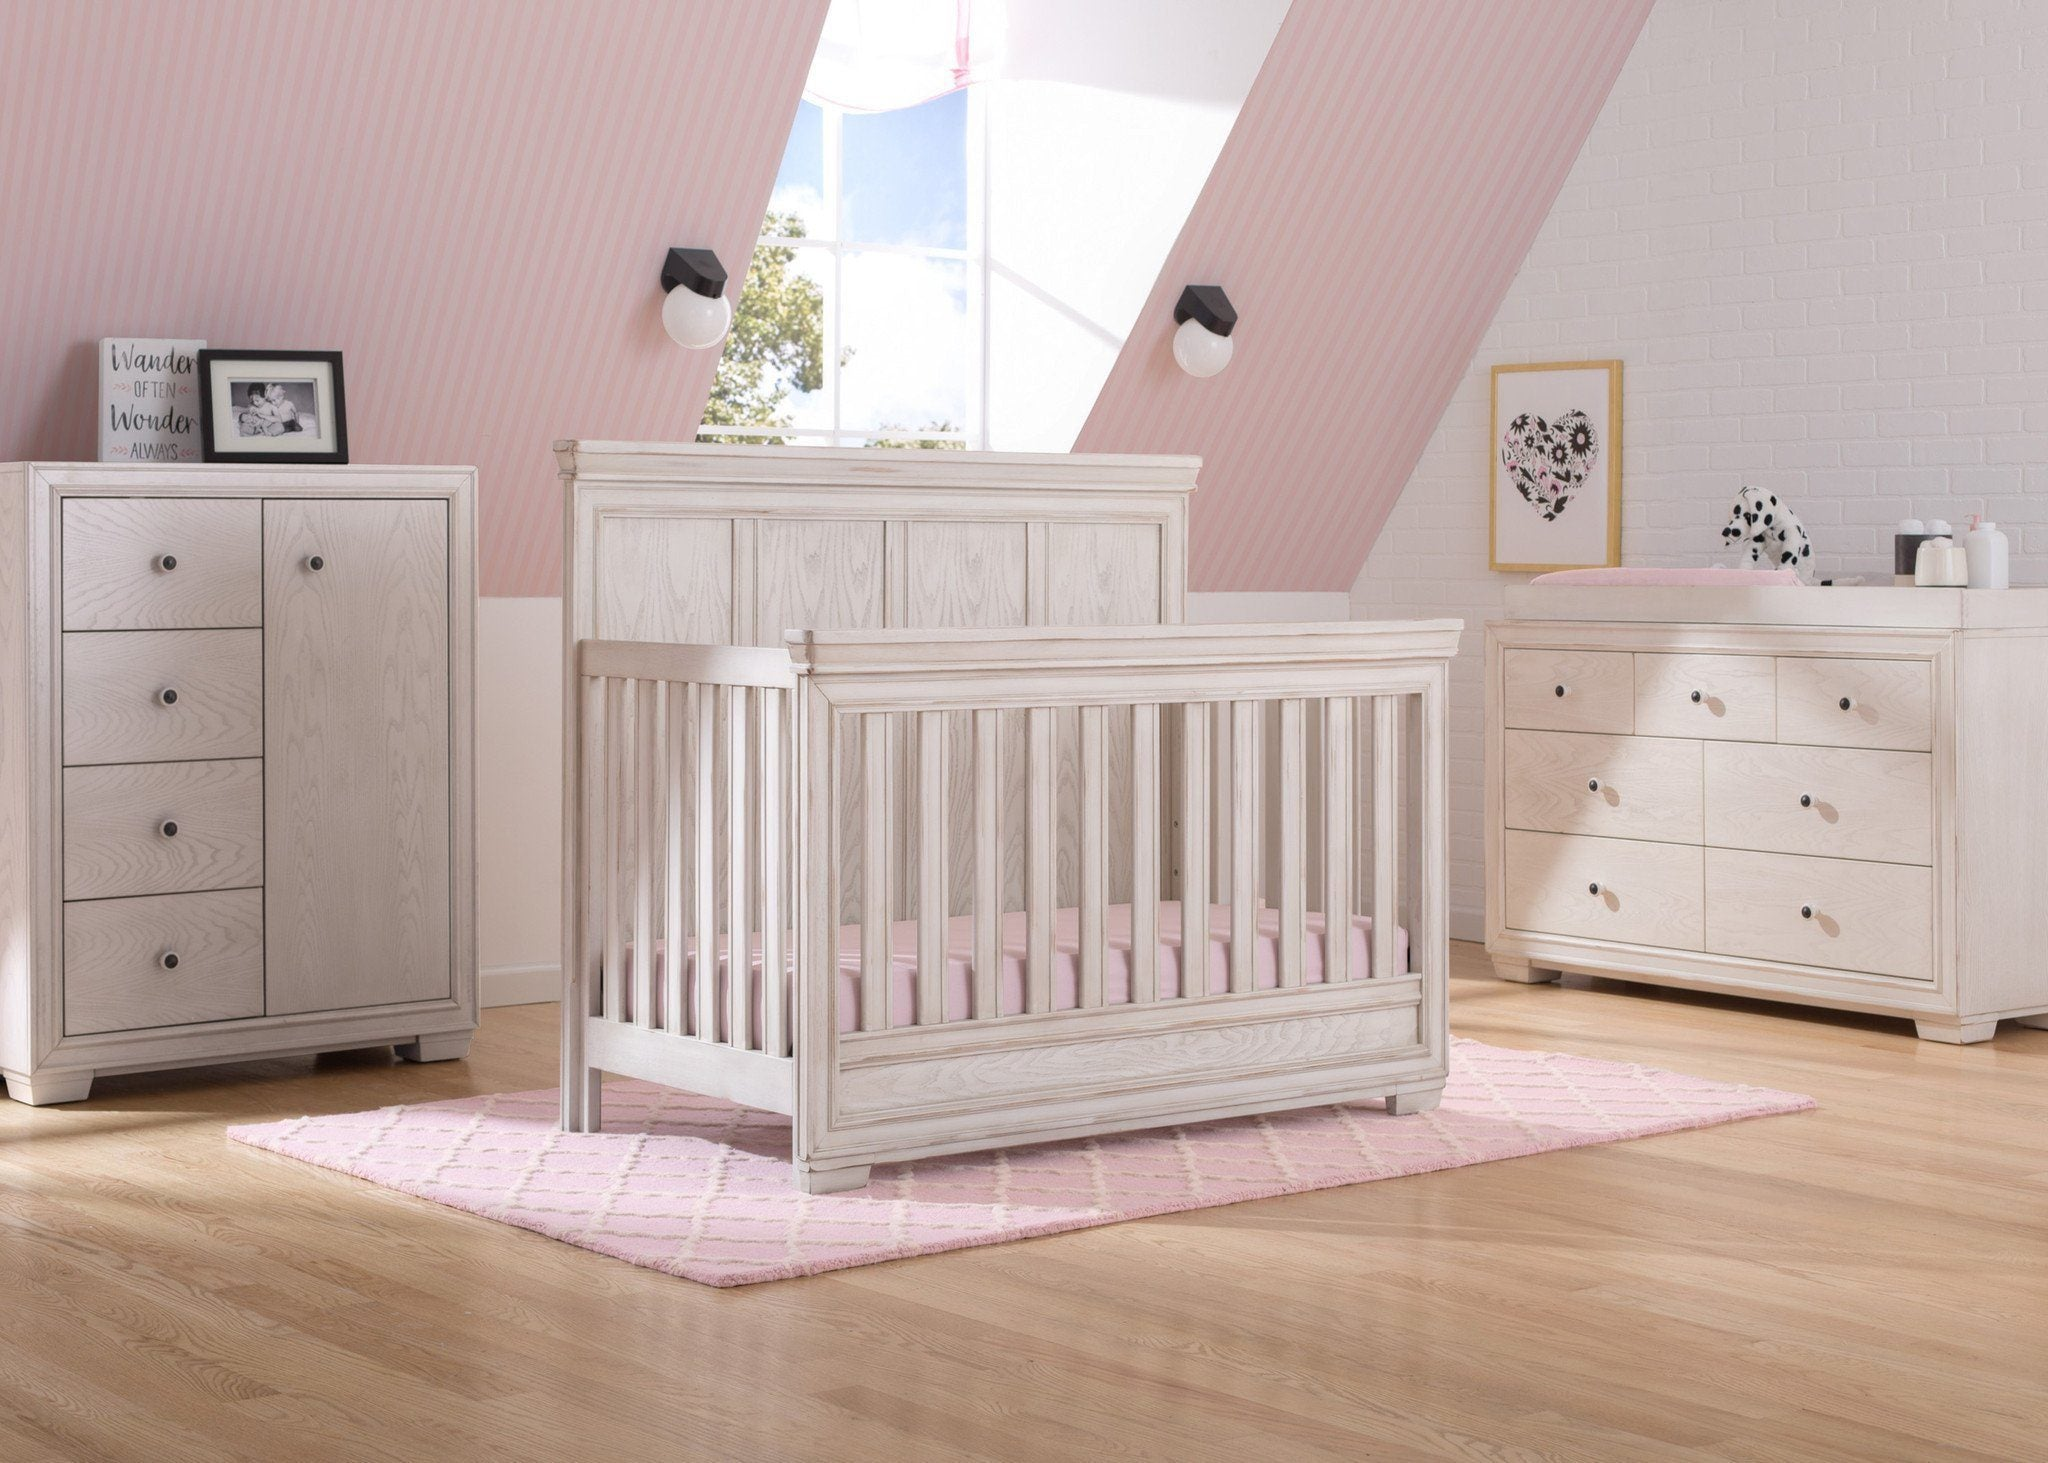 Simmons Kids Antique White (122) Ravello Crib 'N' More, Room View, b1b for Ravello Convertible Crib 'N' More